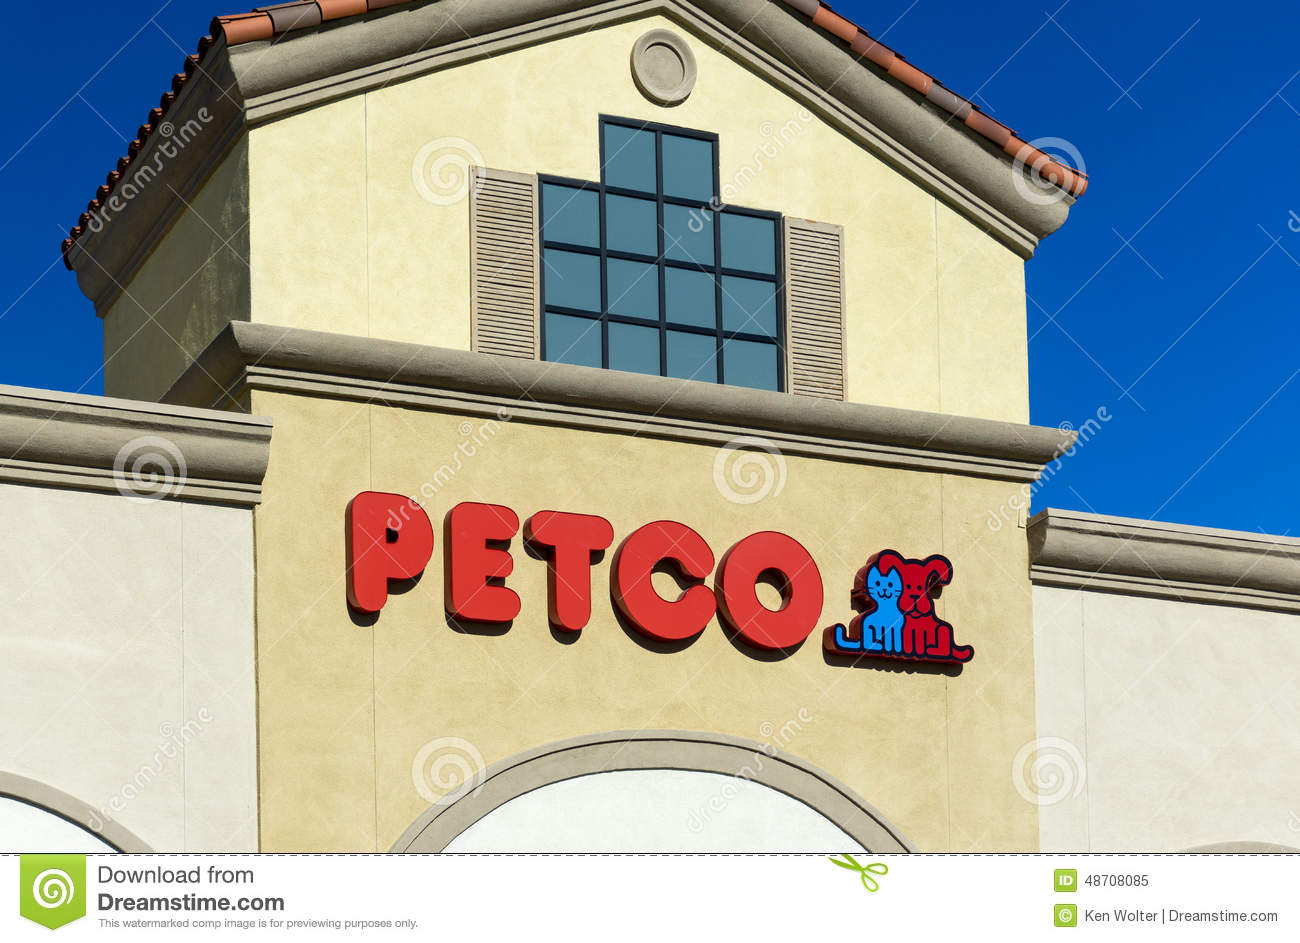 Pet store exterior bing images for A and s salon supplies keighley